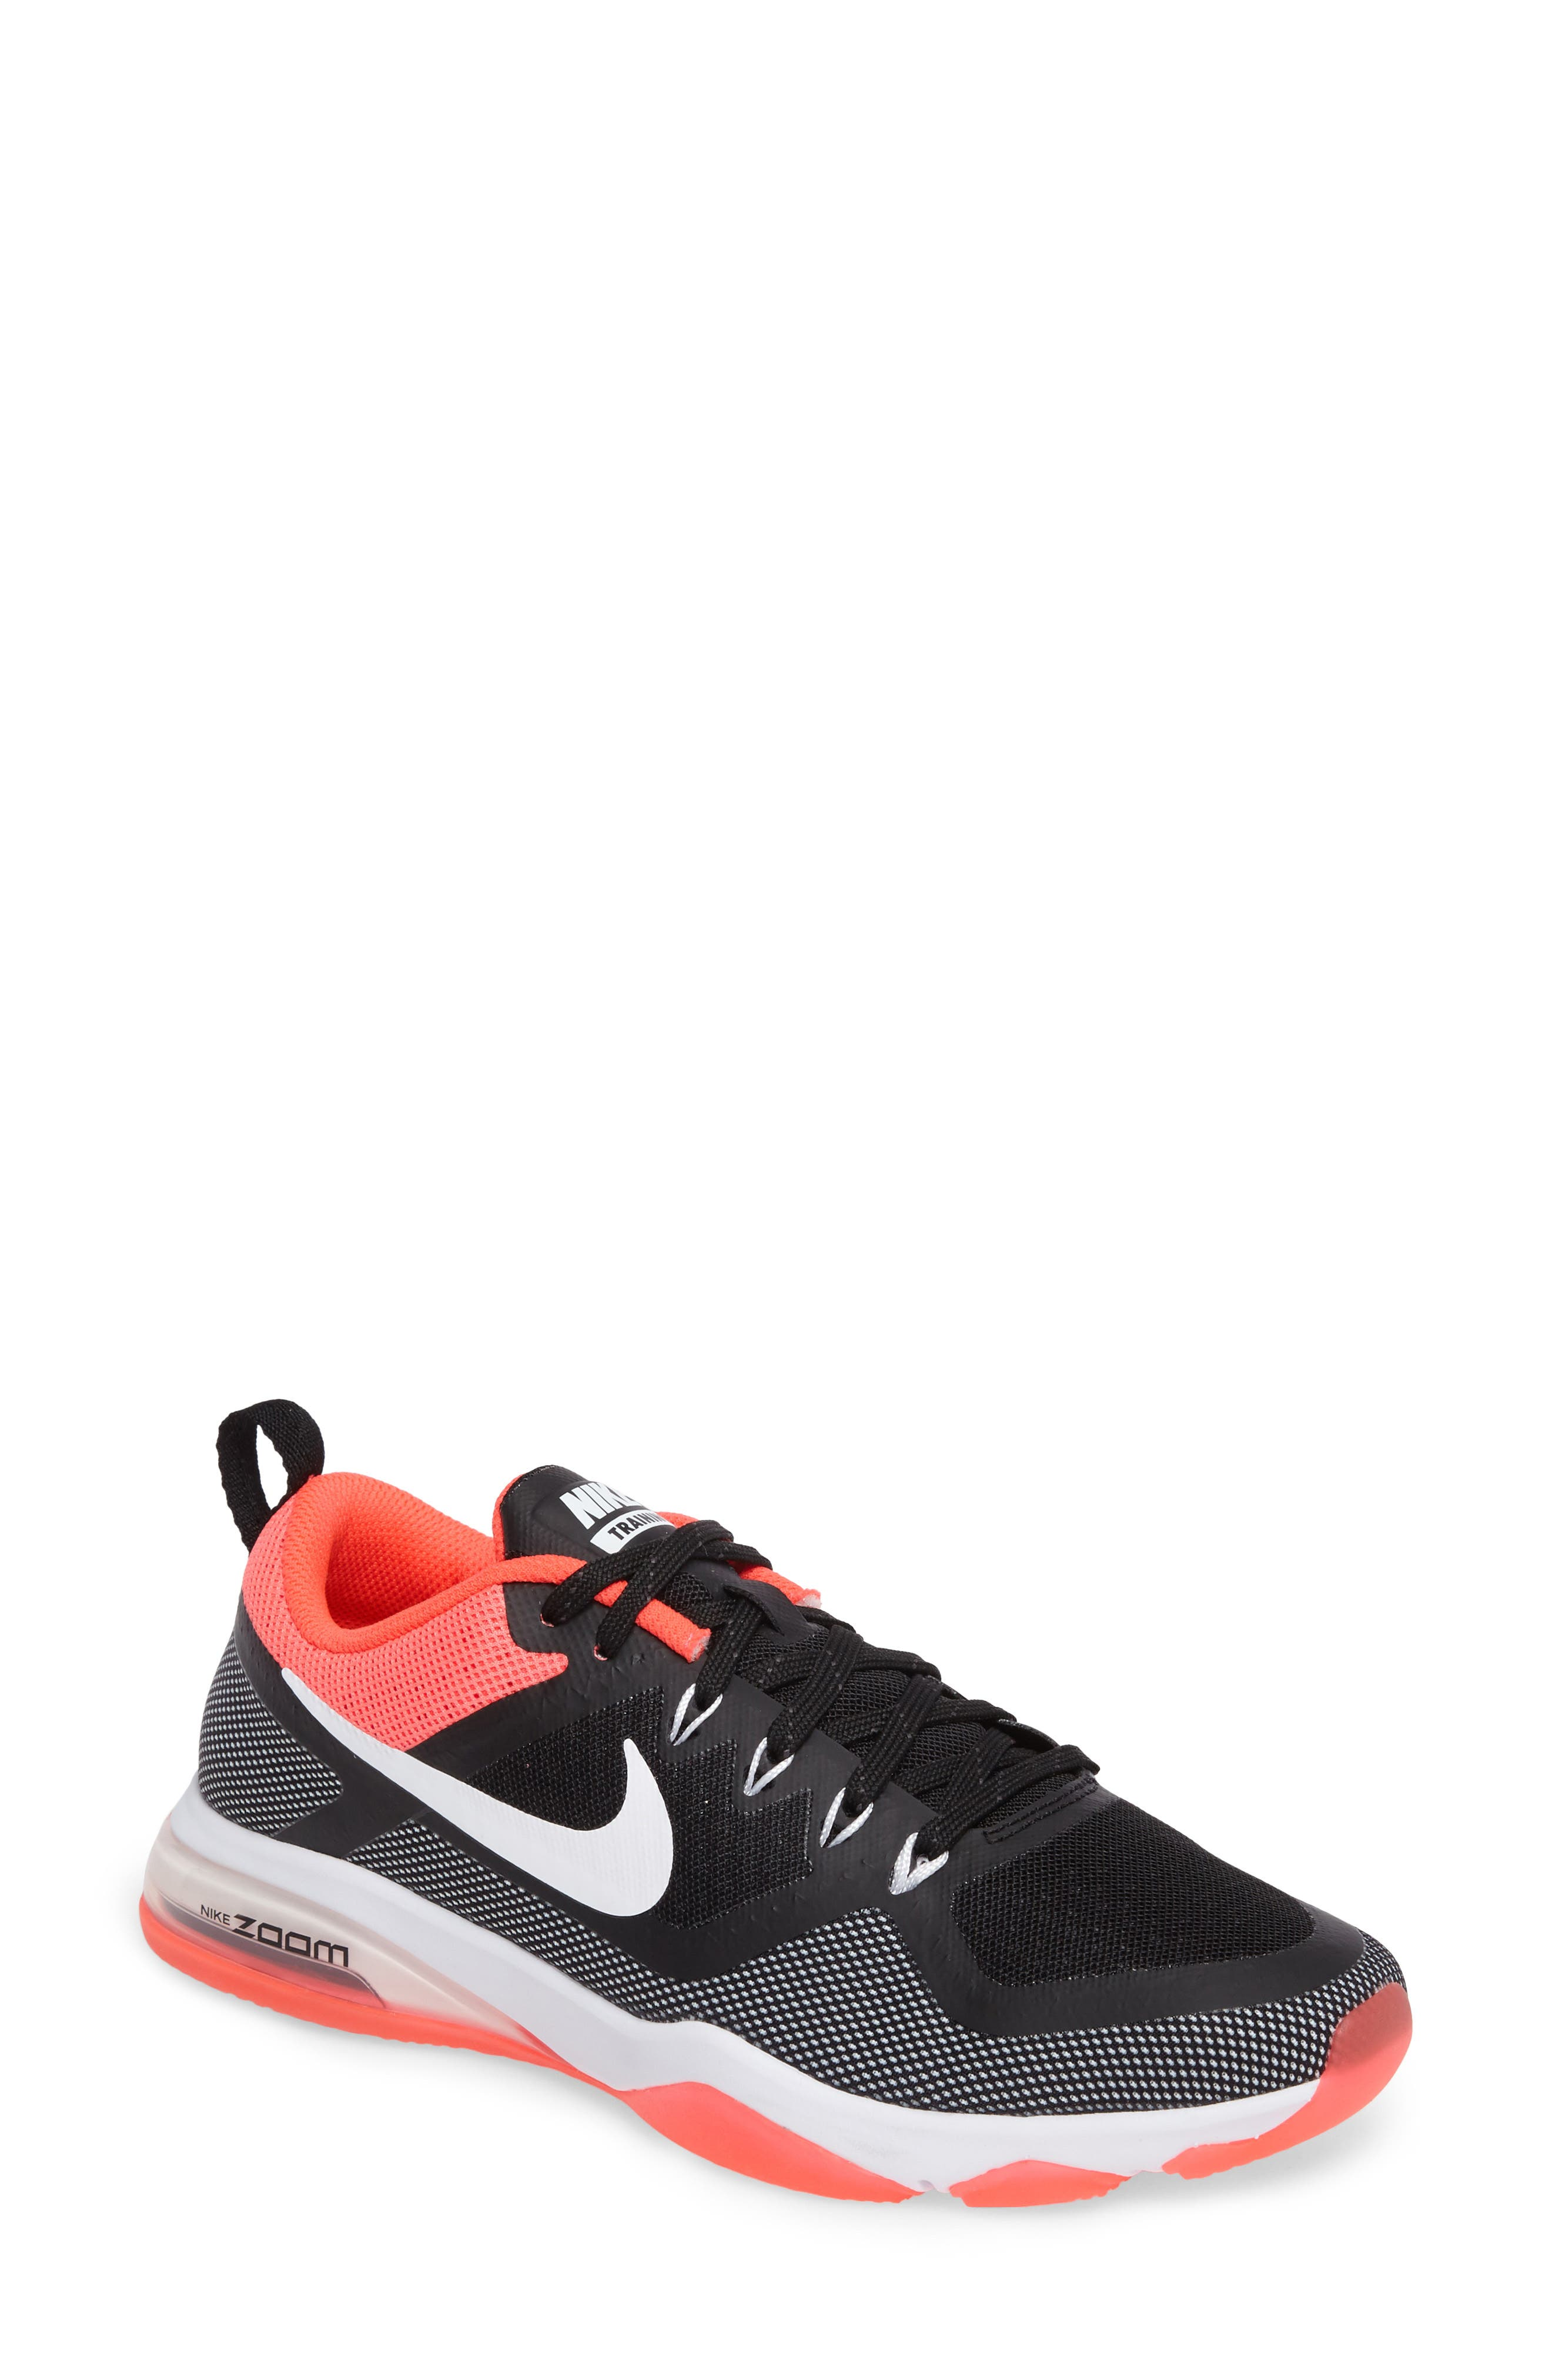 Air Zoom Fitness Training Shoe,                         Main,                         color, Black/ White/ Solar Red